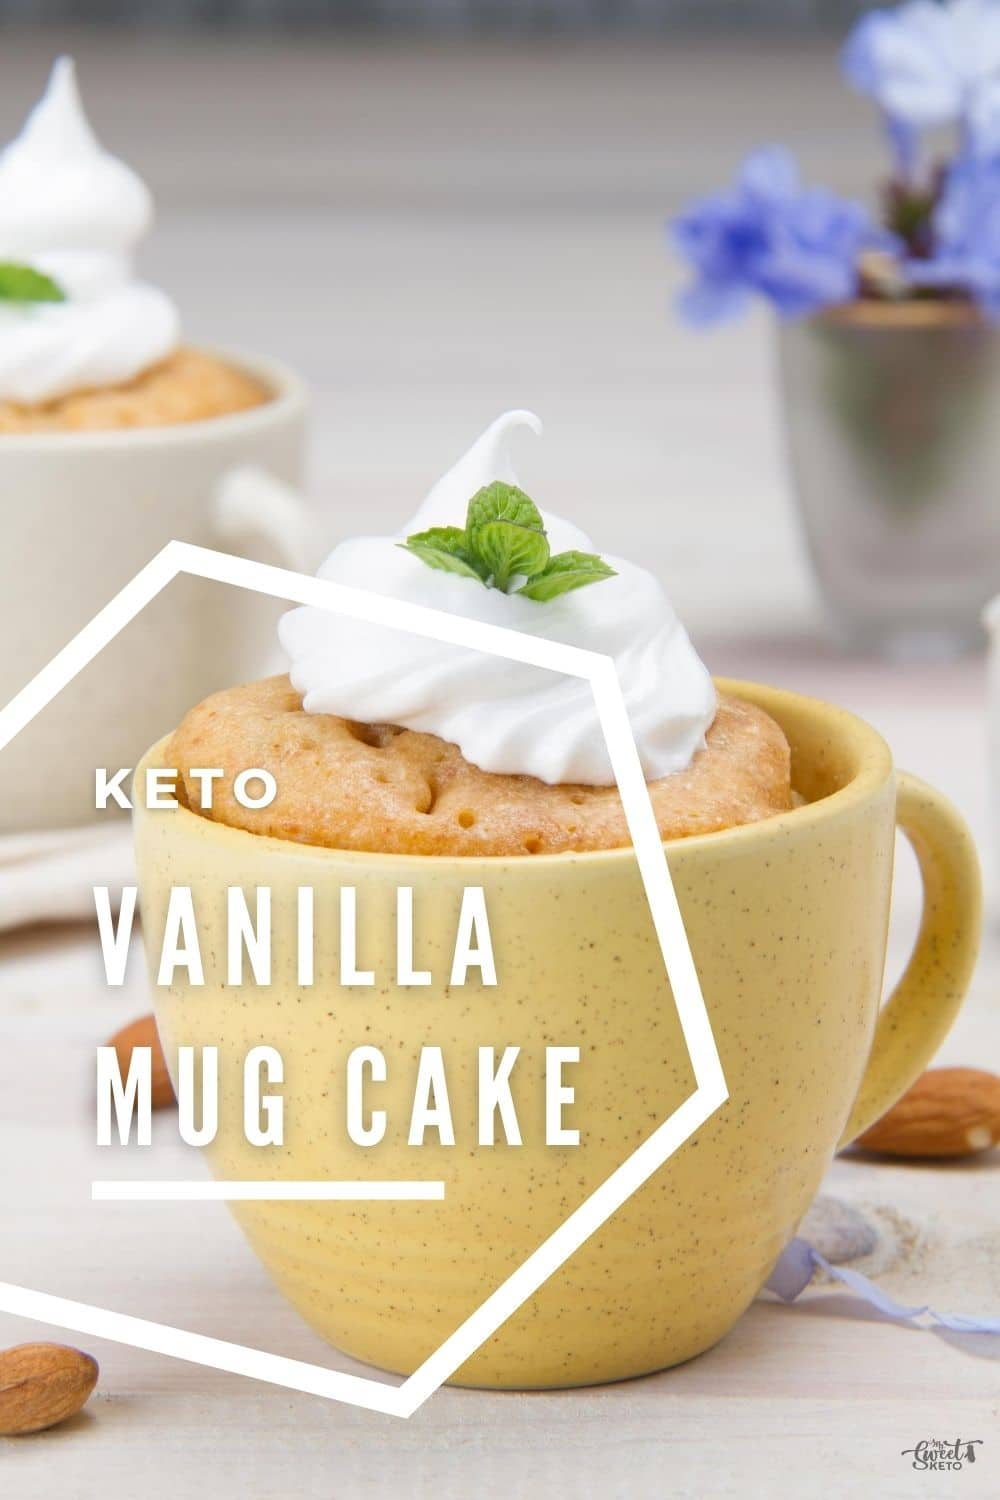 A quick and easy one minute, single serving Low-Carb Keto Vanilla Mug Cake. This is for all vanilla lovers! #keto #lowcarb #mugcake #vanilla